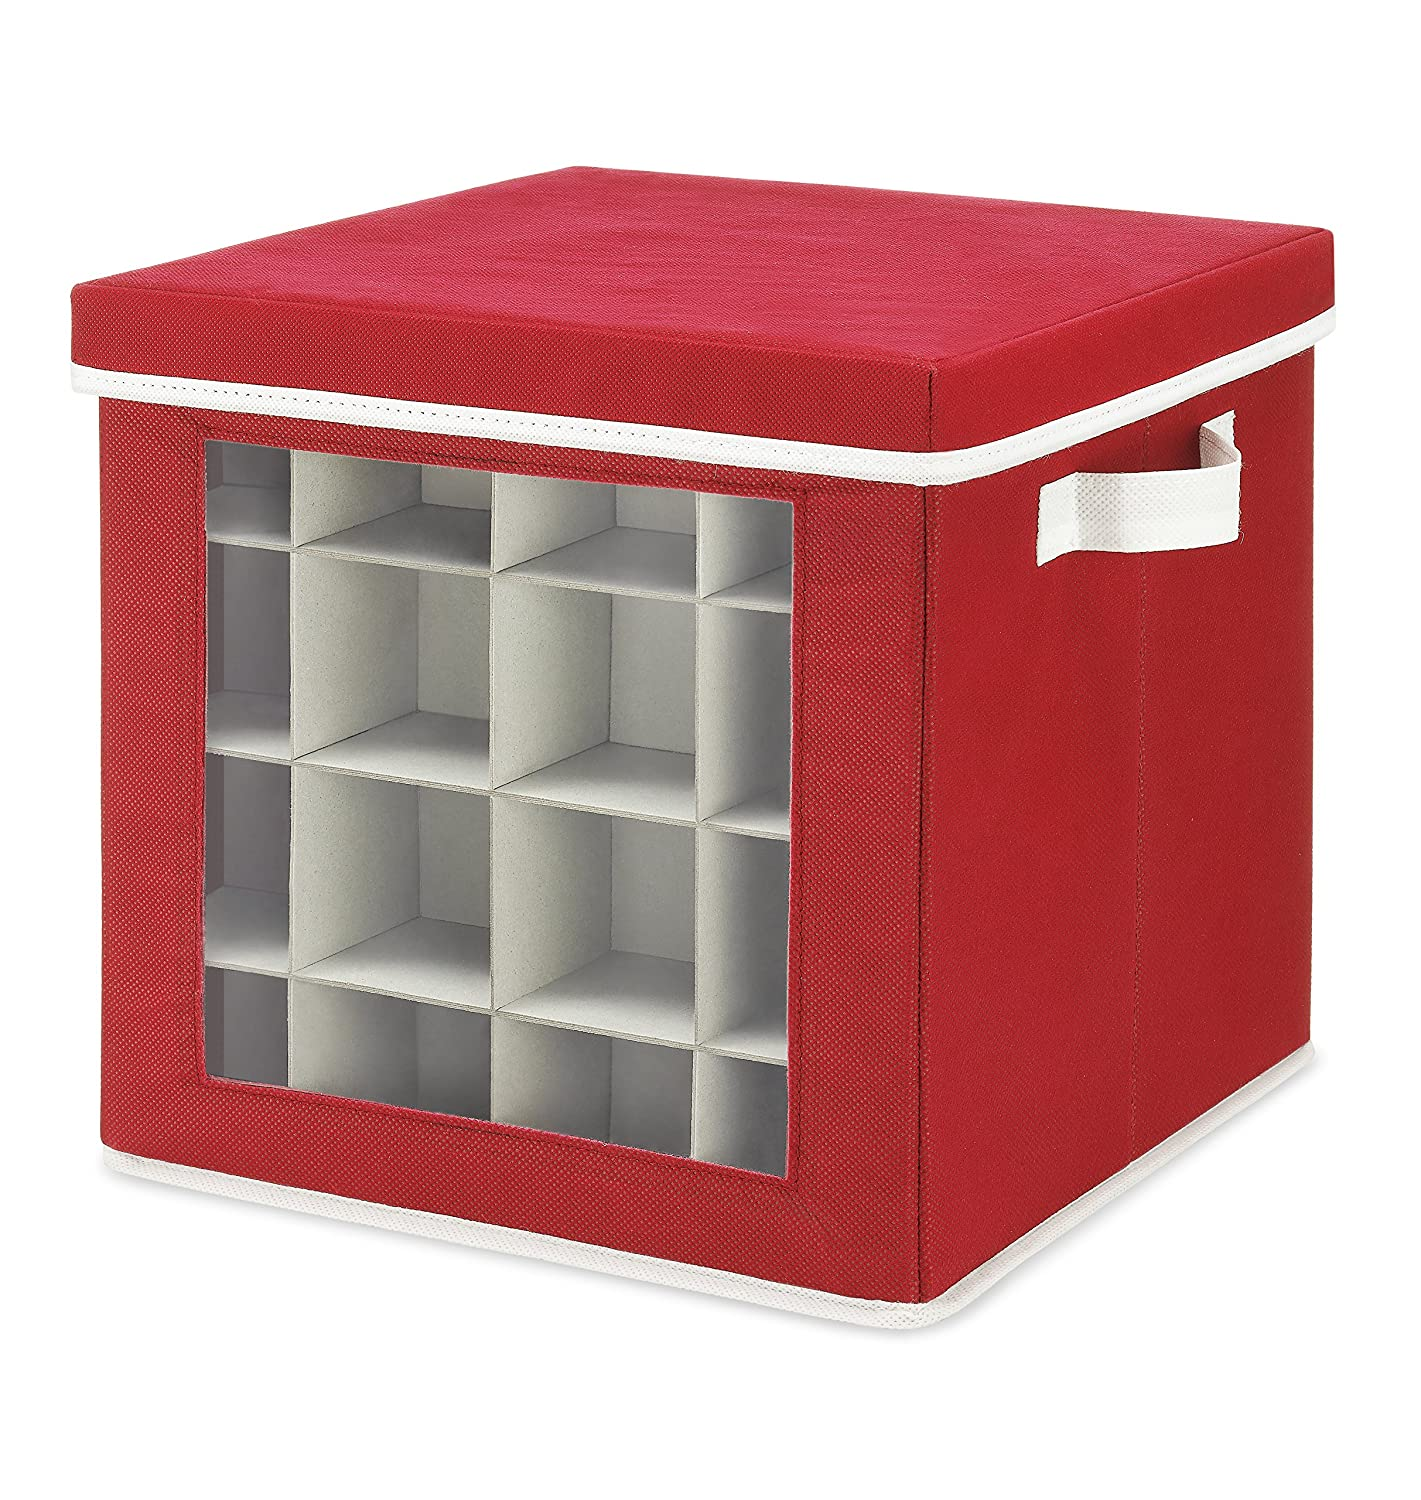 Whitmor Holiday Ornaments Storage Cube with 64 Individual Compartments - Made with Non-Woven Polypropylene Fabric - Transparent Cover for Easy Viewing - Removable Top and Convenient Handle WH-6725-5340